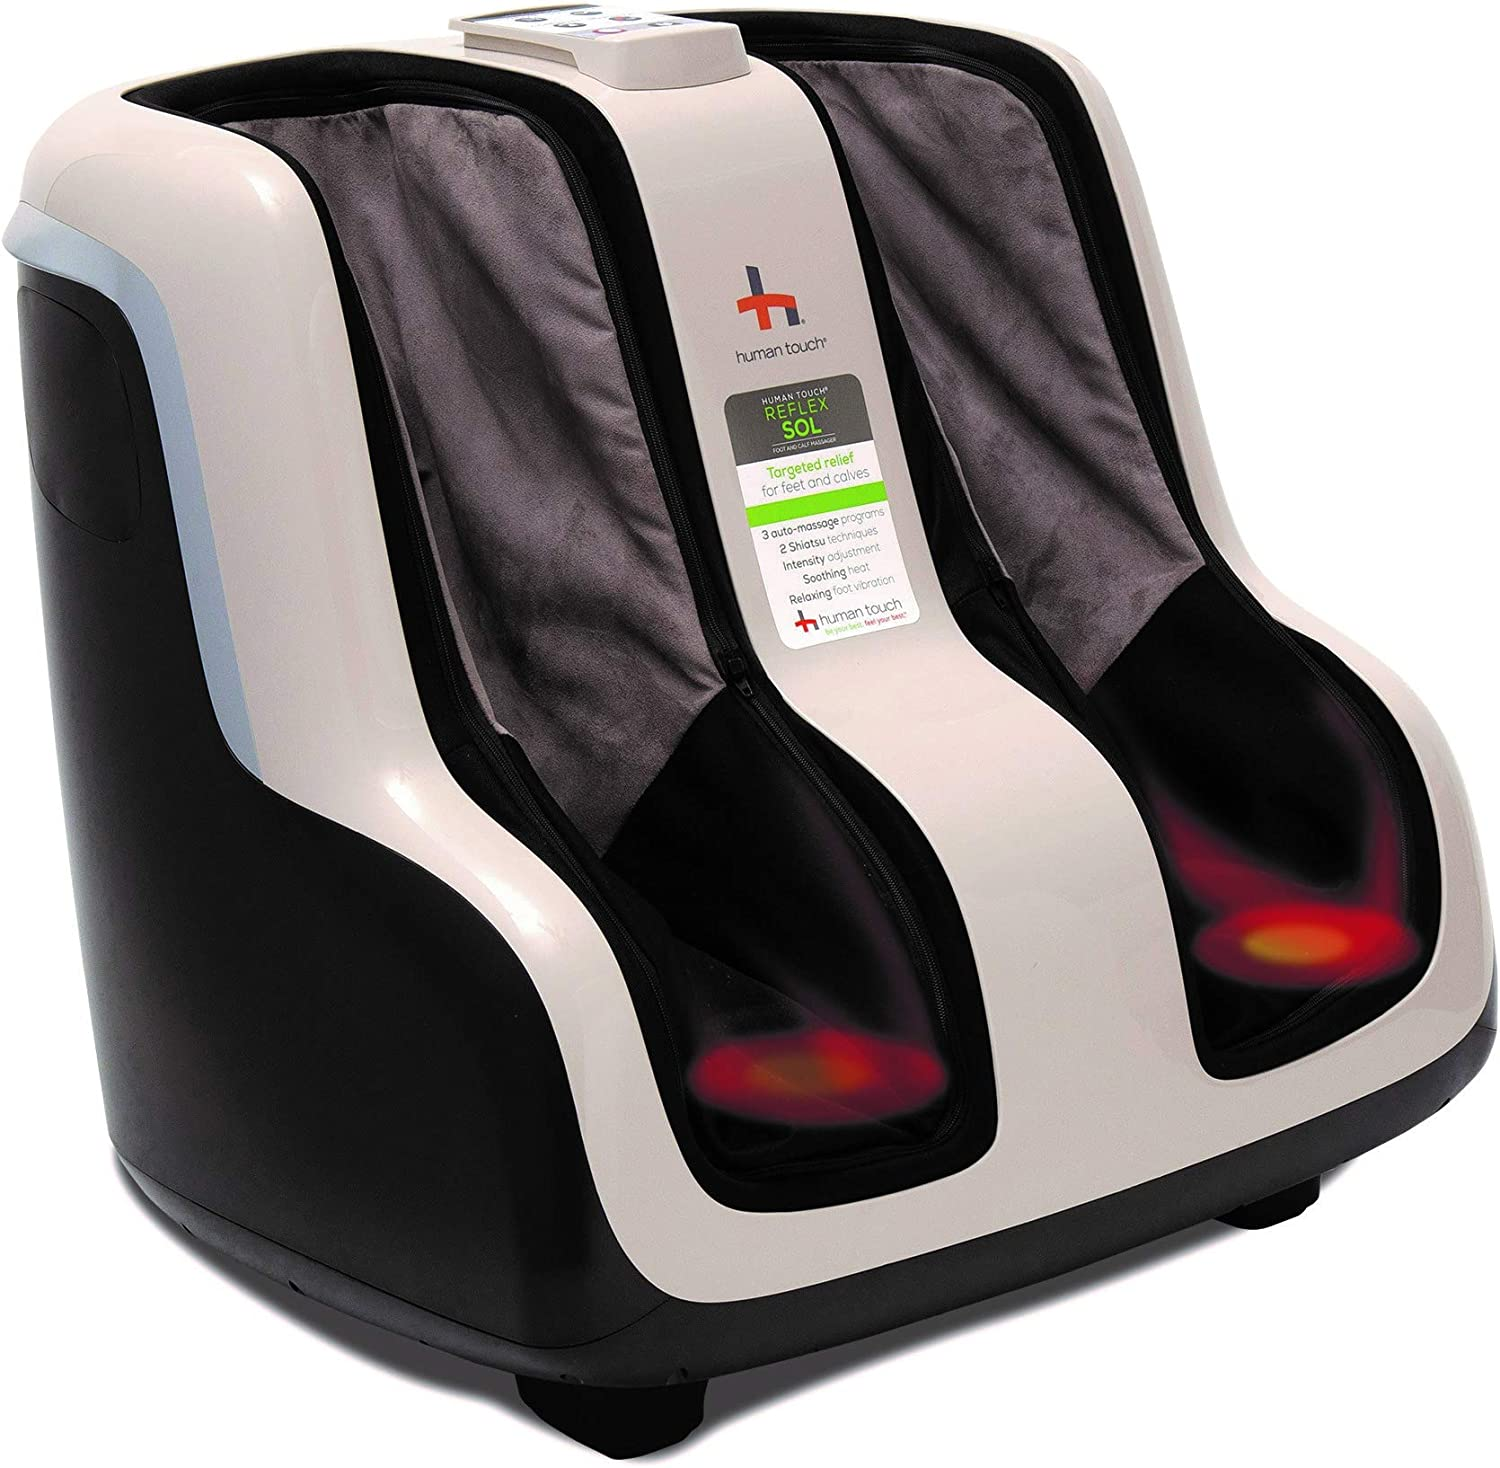 Human Touch Reflex SOL Foot and Calf Relaxation Shiatsu Massager with Heat and Vibration- Patented Technology